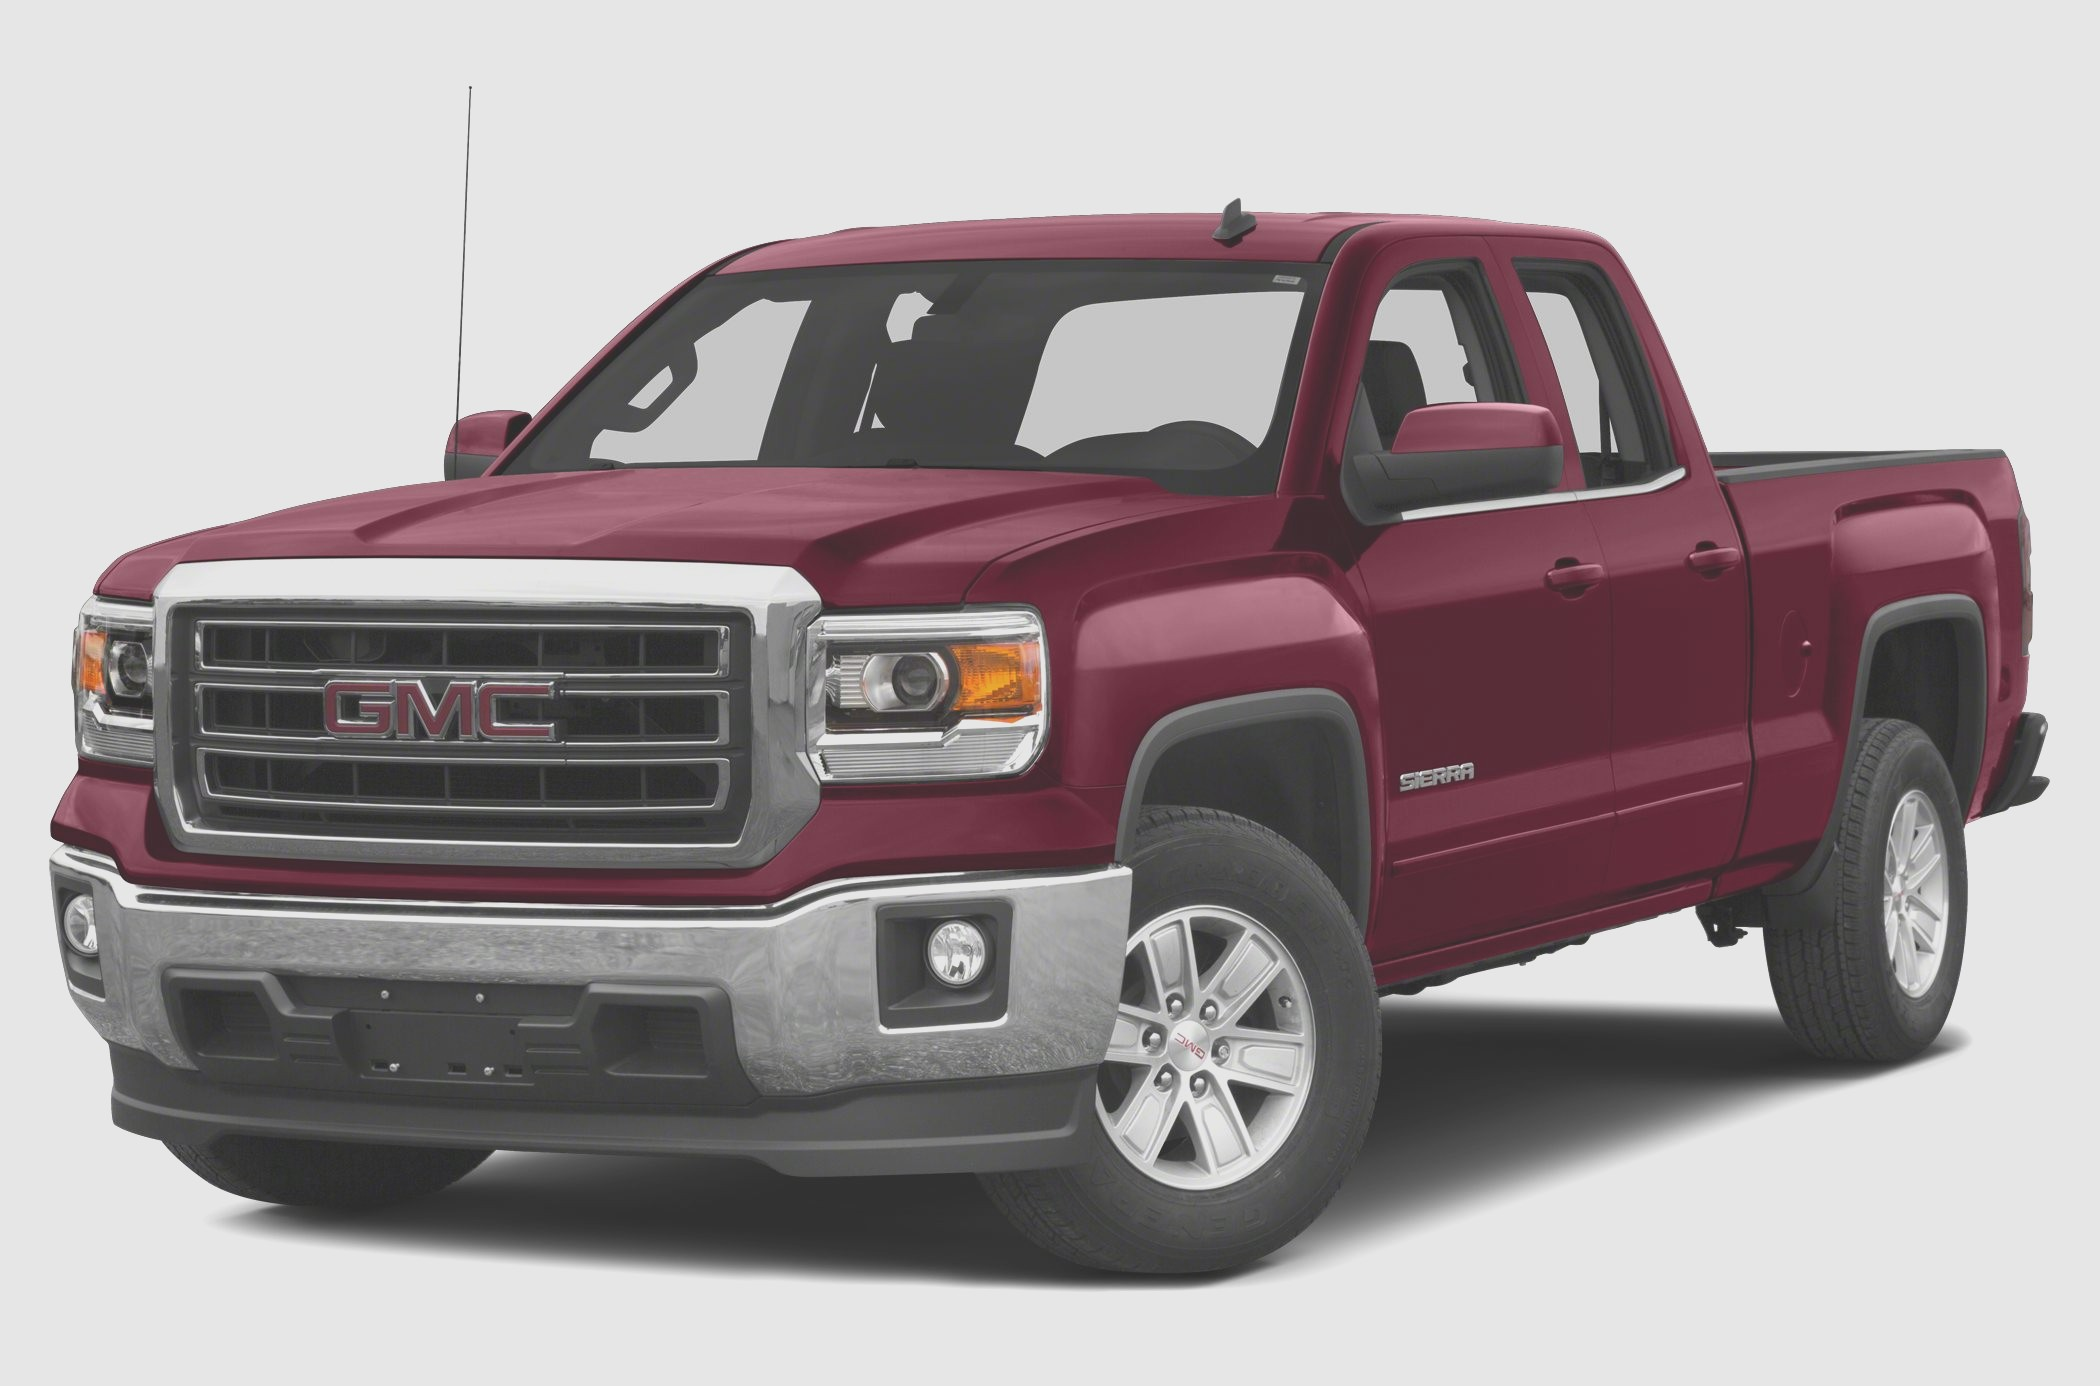 al serra chevrolet inspirational chevrolet dealerships in alabama new and used cars for sale at mike